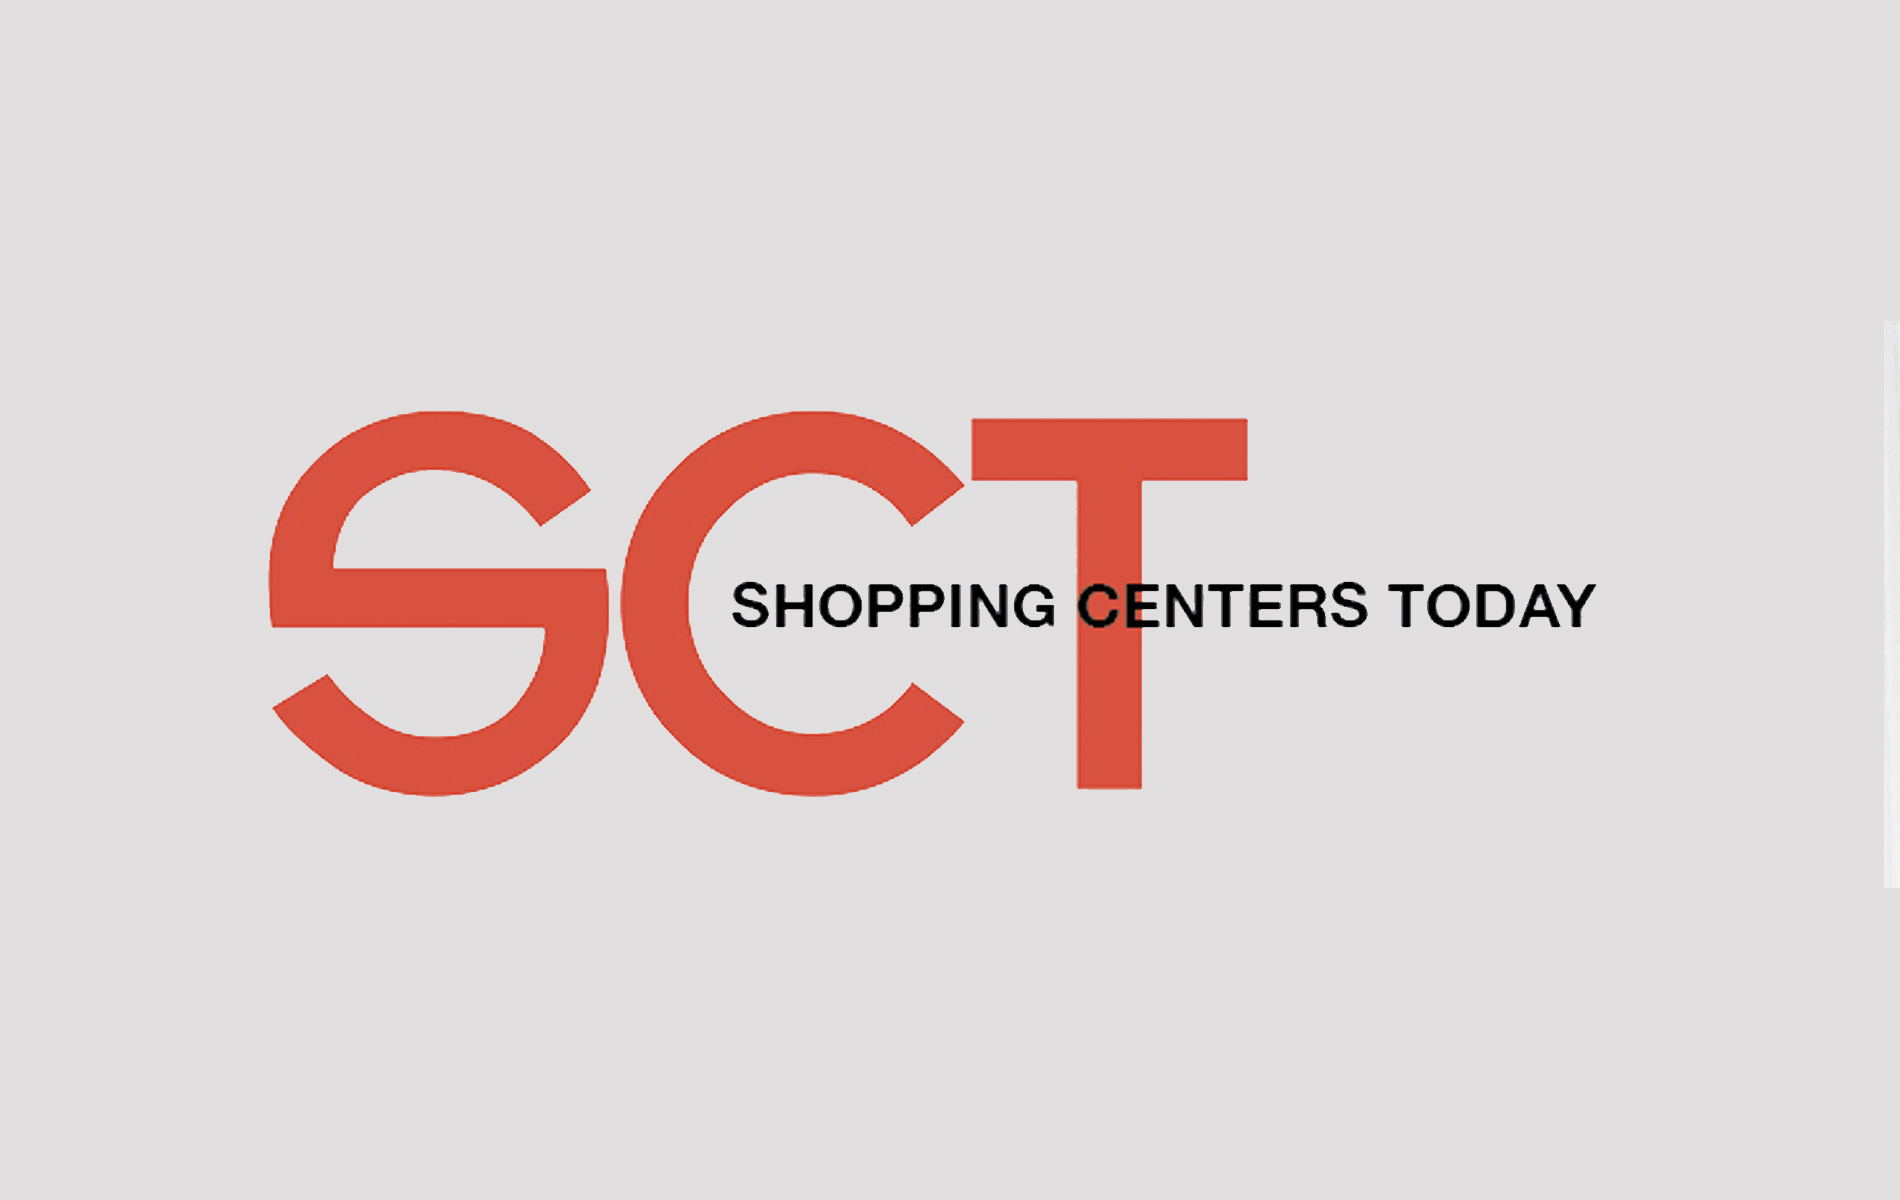 Shopping Centers Today logo